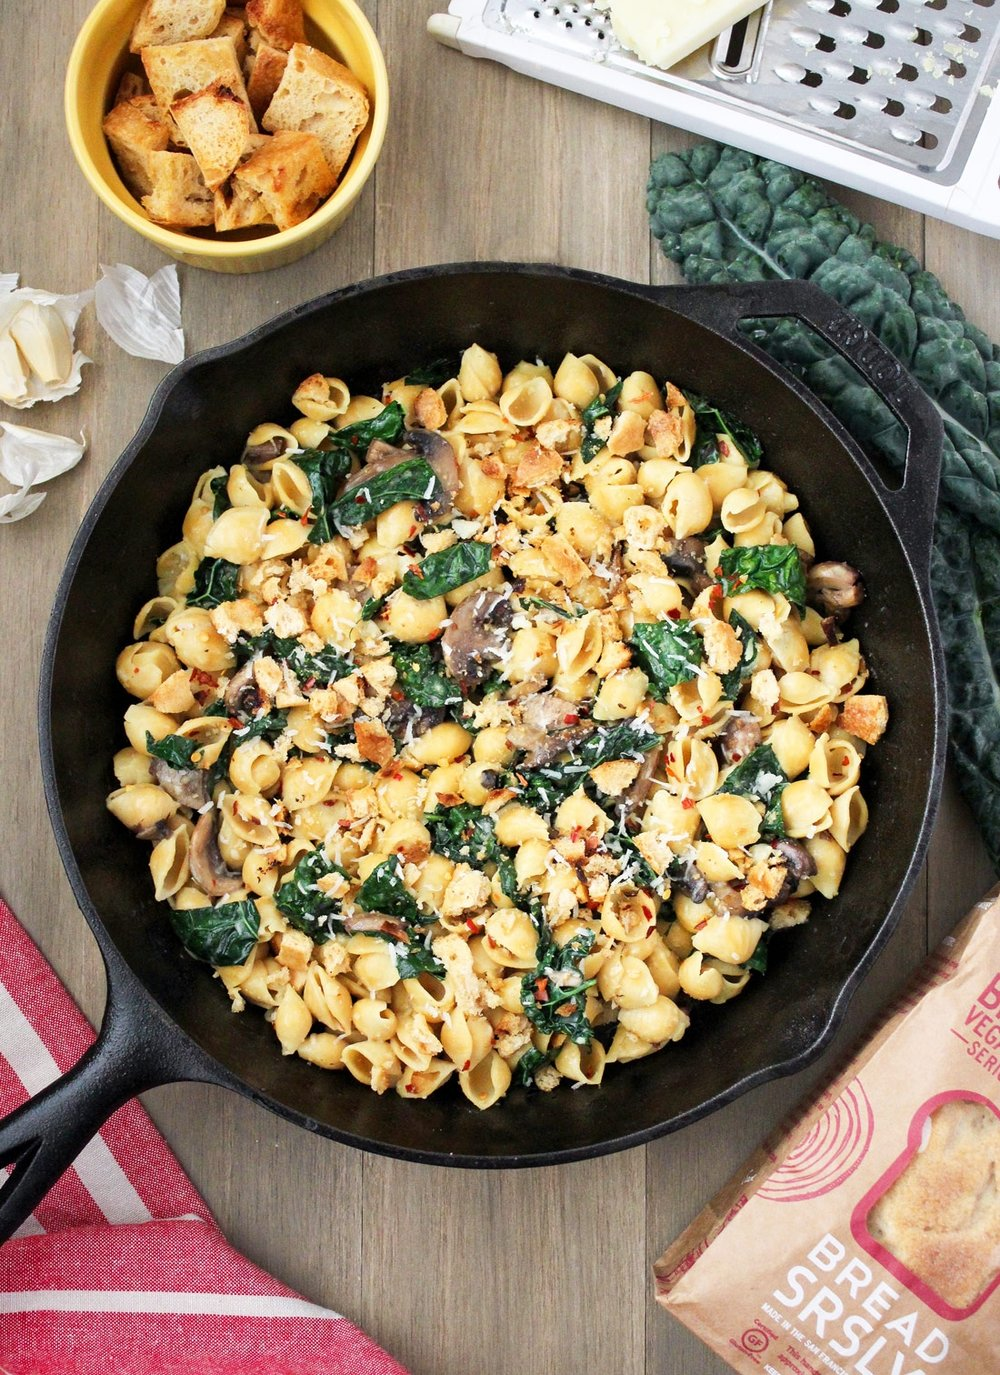 Chickpea Pasta with Gluten-Free Bread Crumbs Kale, and Mushrooms